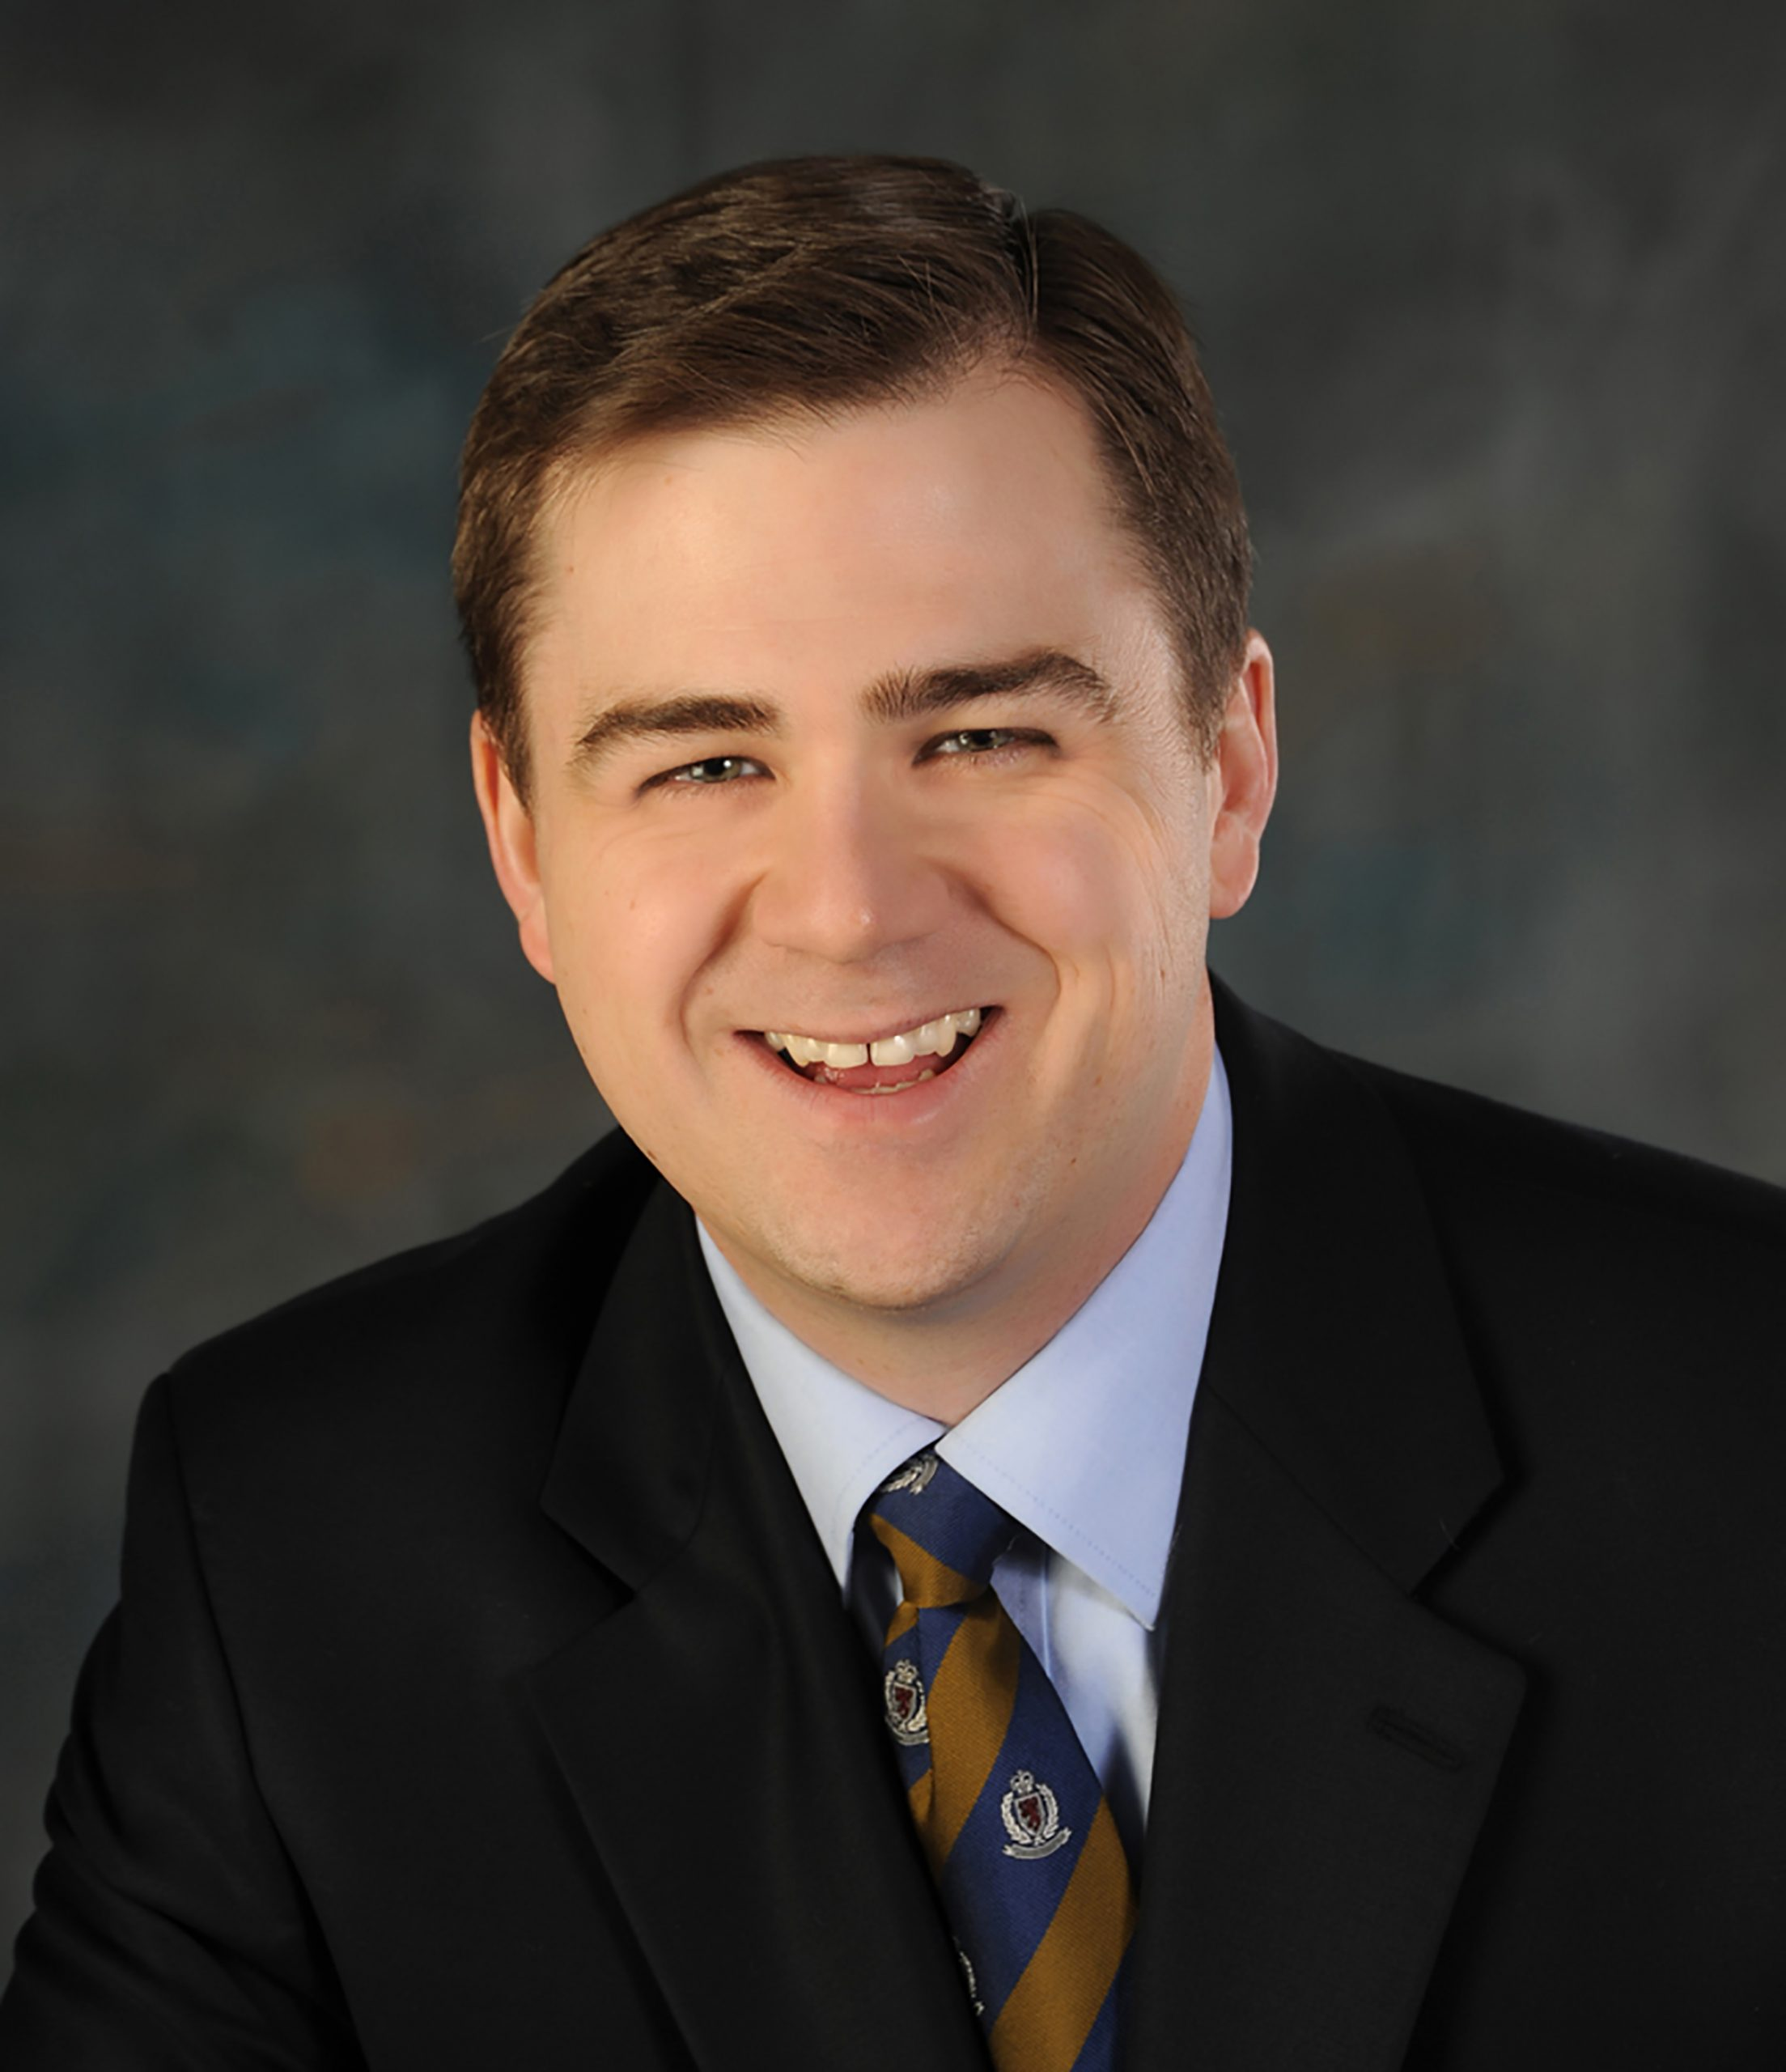 University of Notre Dame political science professor David Campbell will speak about Mormons' place in a changing religious landscape Thursday, Oct. 30, 7 p.m. In the Salt Lake City Main Library auditorium.